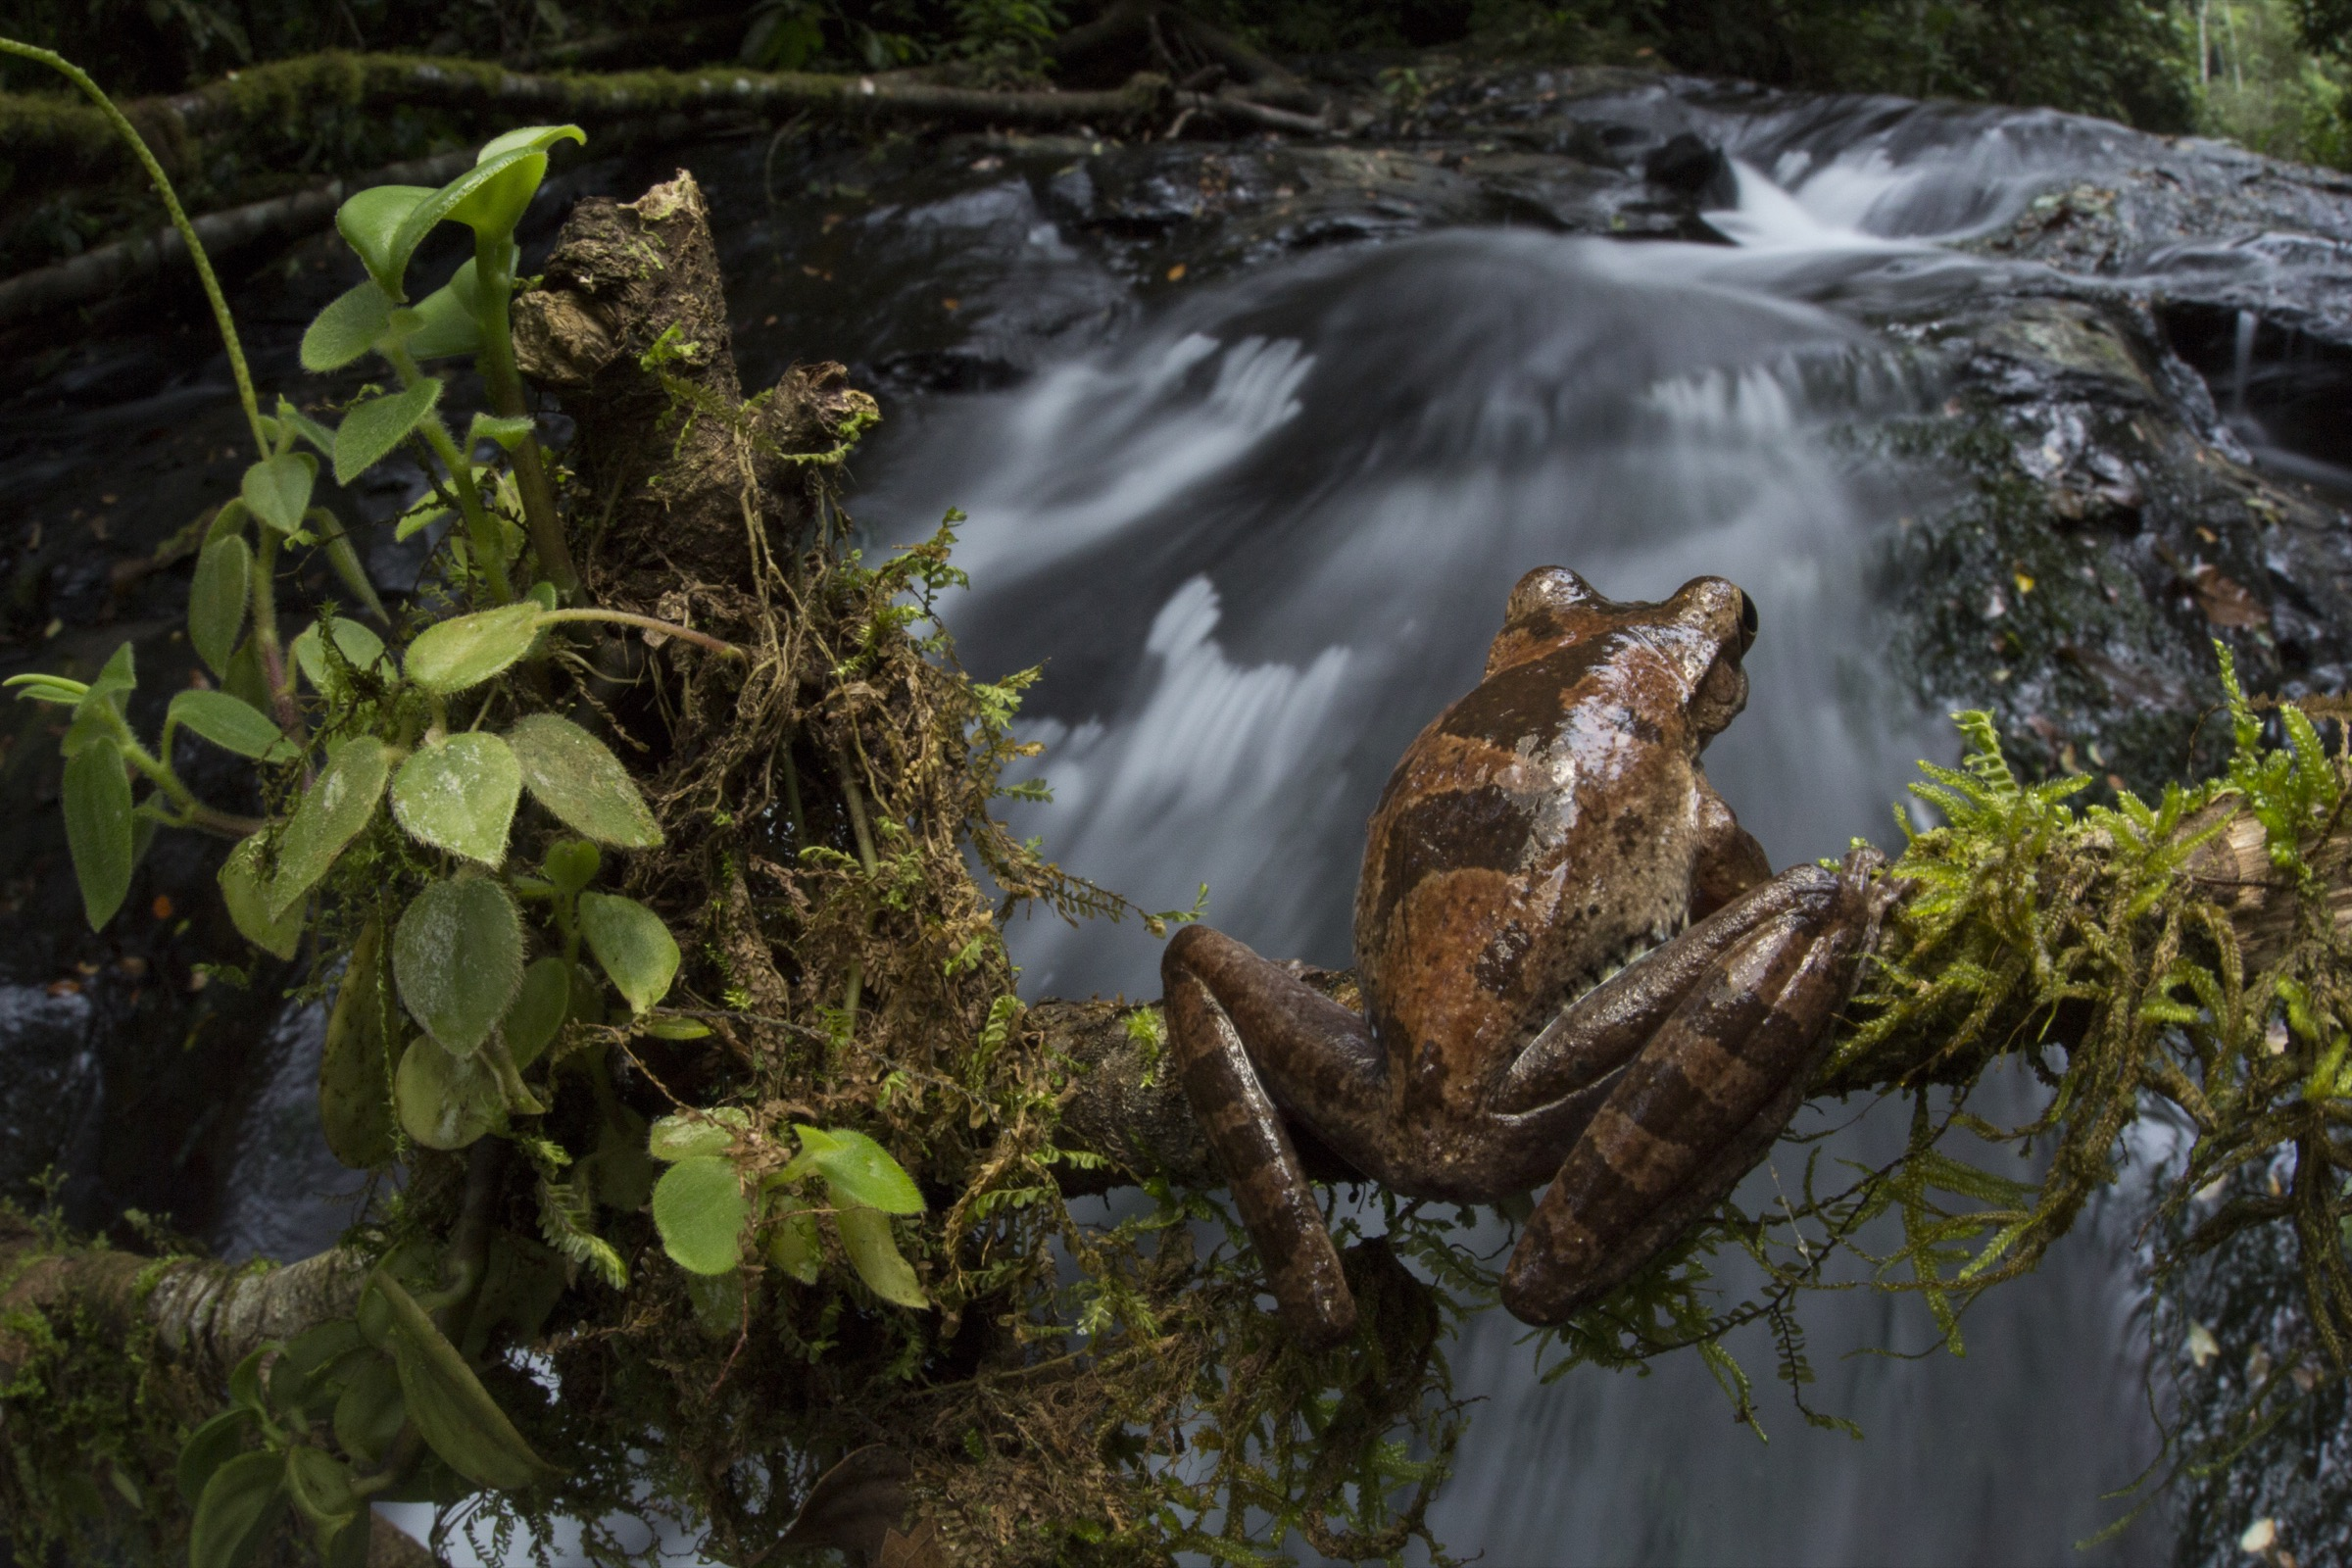 A drab treefrog (<em>Smilisca sordida</em>) perches above a waterfall along the Rio Carbon in southeastern Costa Rica.